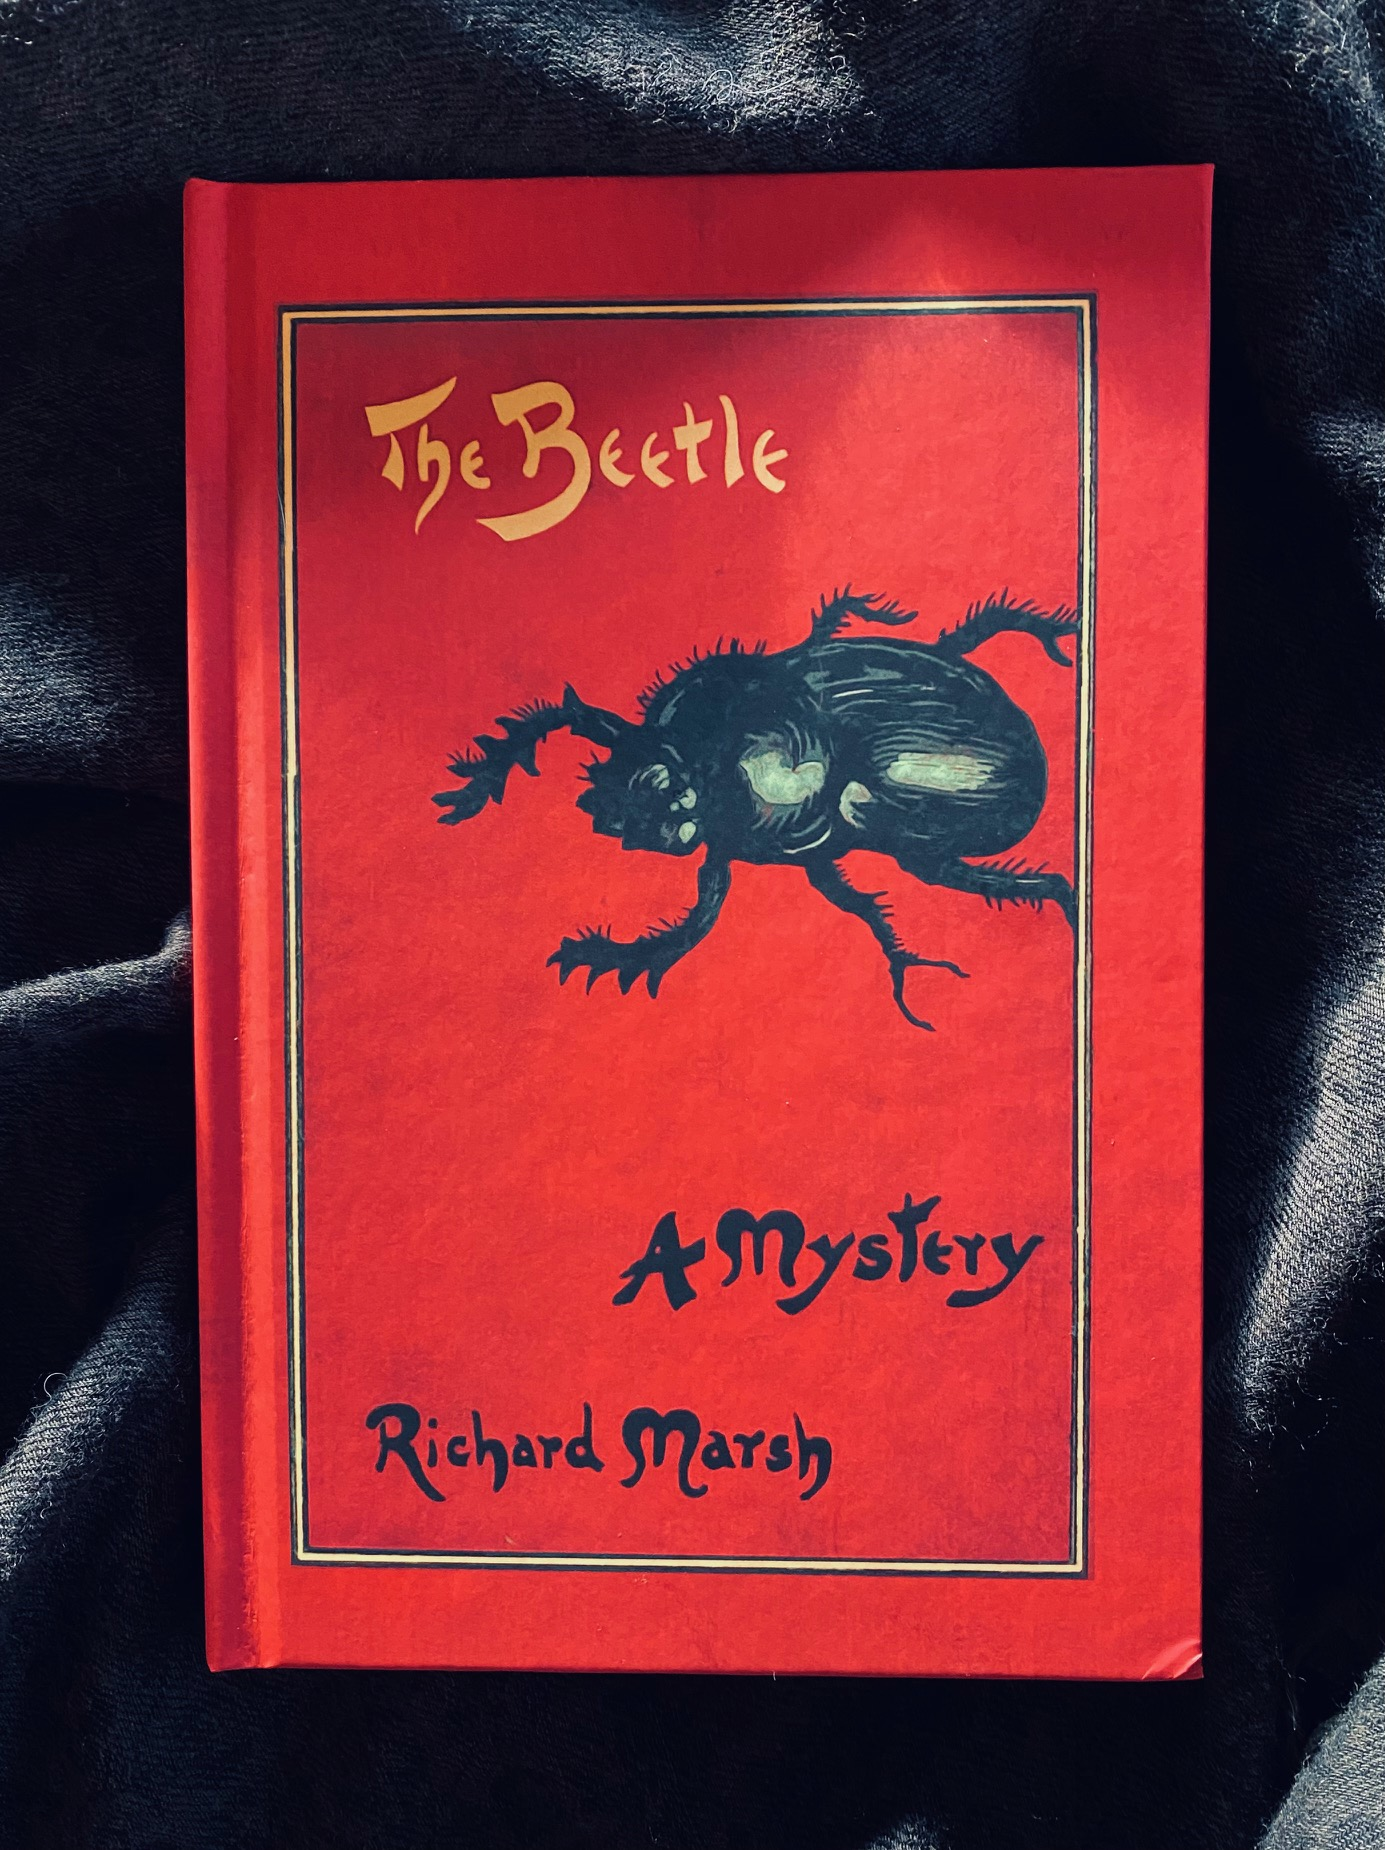 Brain comes back online, also, 1000 books: The Beetle.